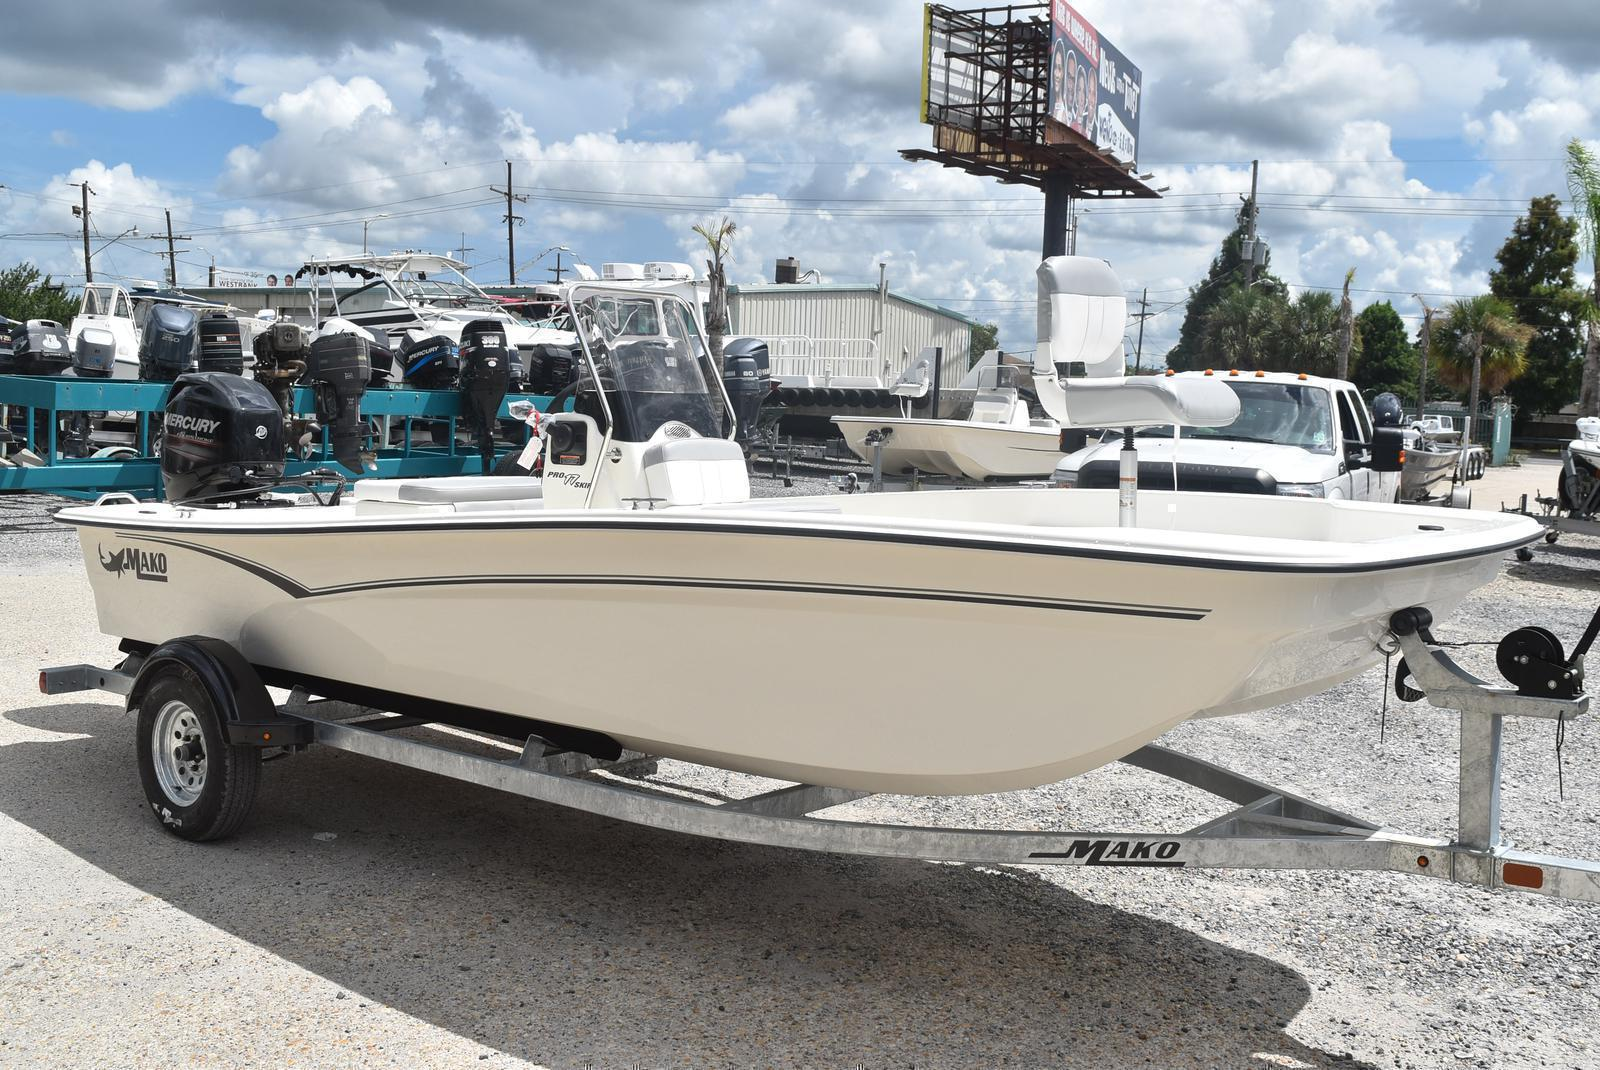 2020 Mako boat for sale, model of the boat is Pro Skiff 17, 75 ELPT & Image # 683 of 702